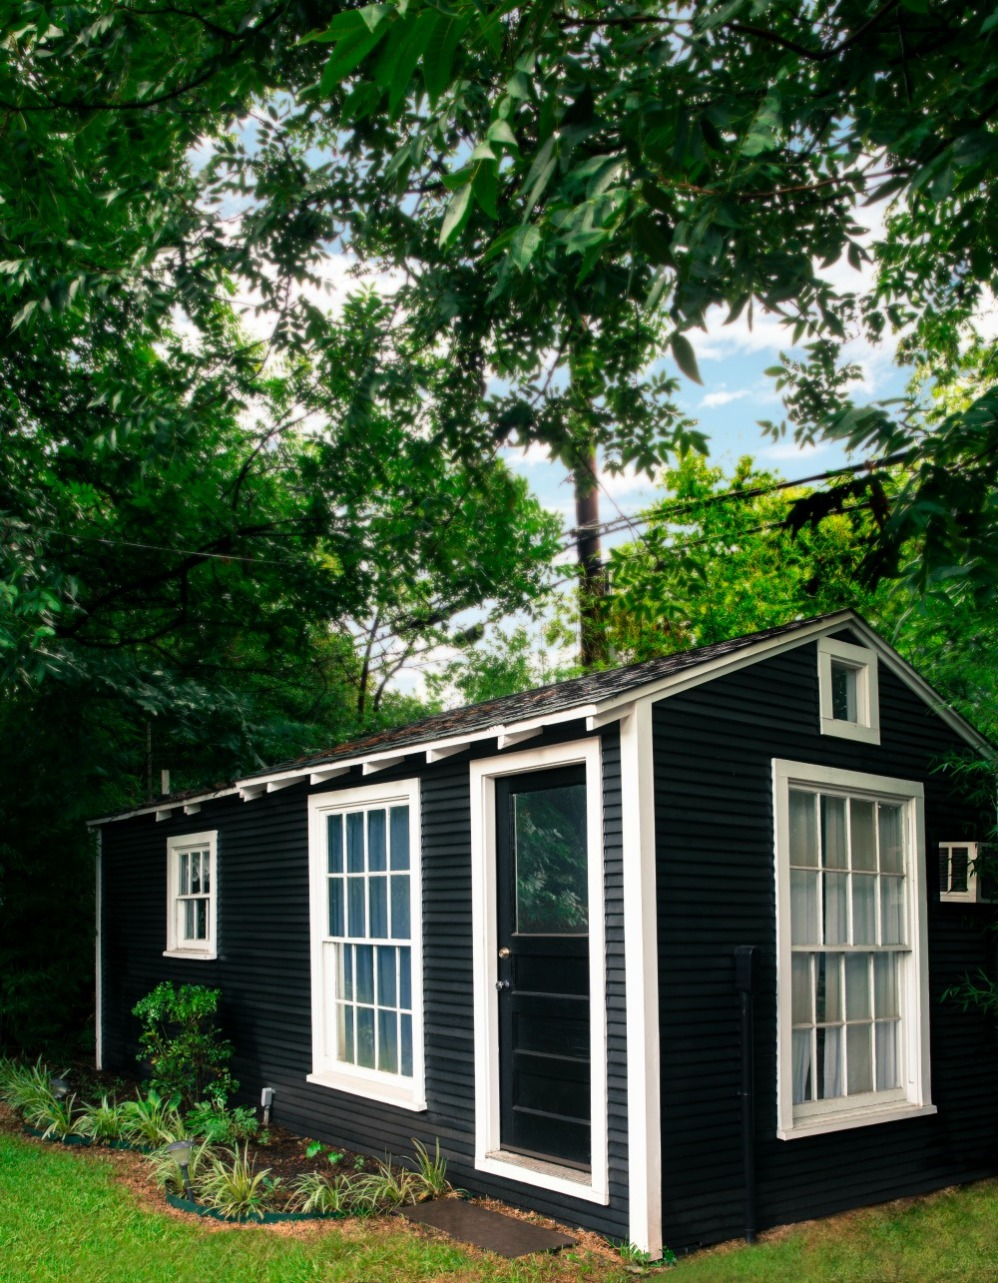 She sheds a room of your own by erika kotite win a copy for Design your own cabin